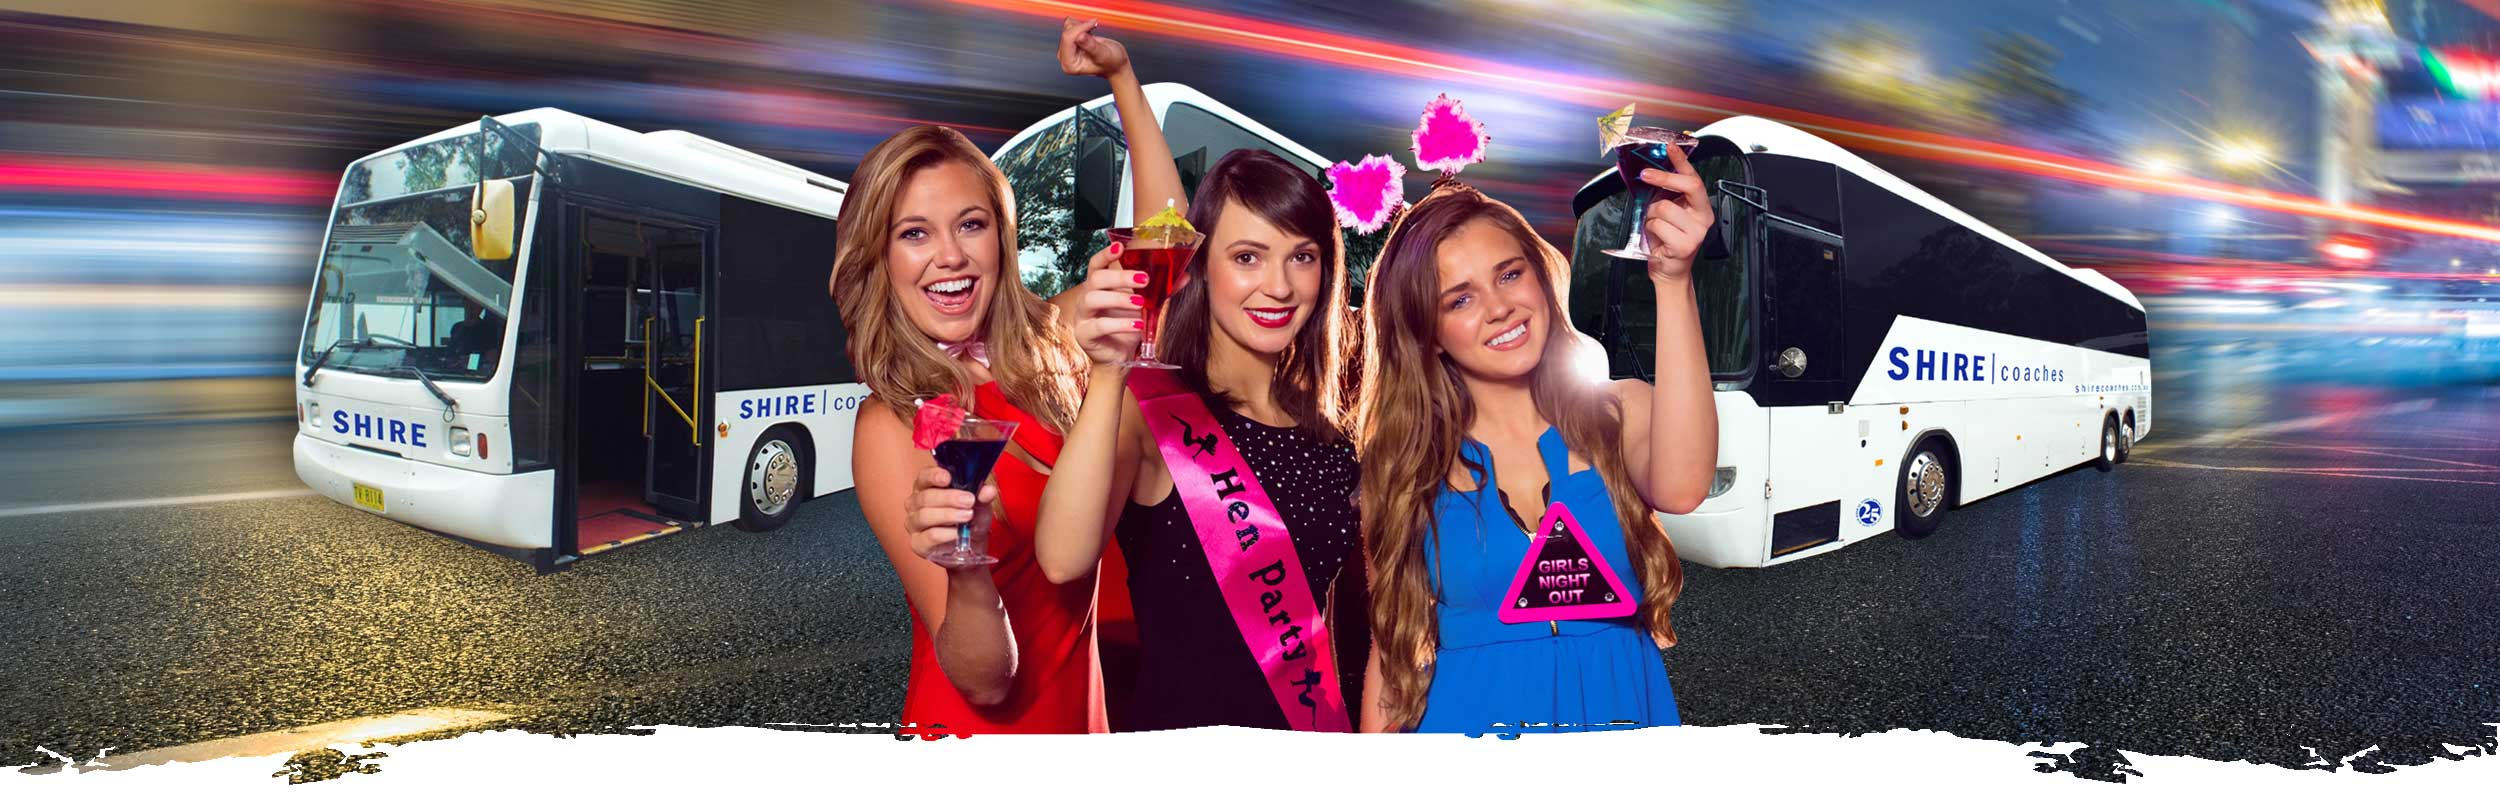 bucks and hens parties bus charters image